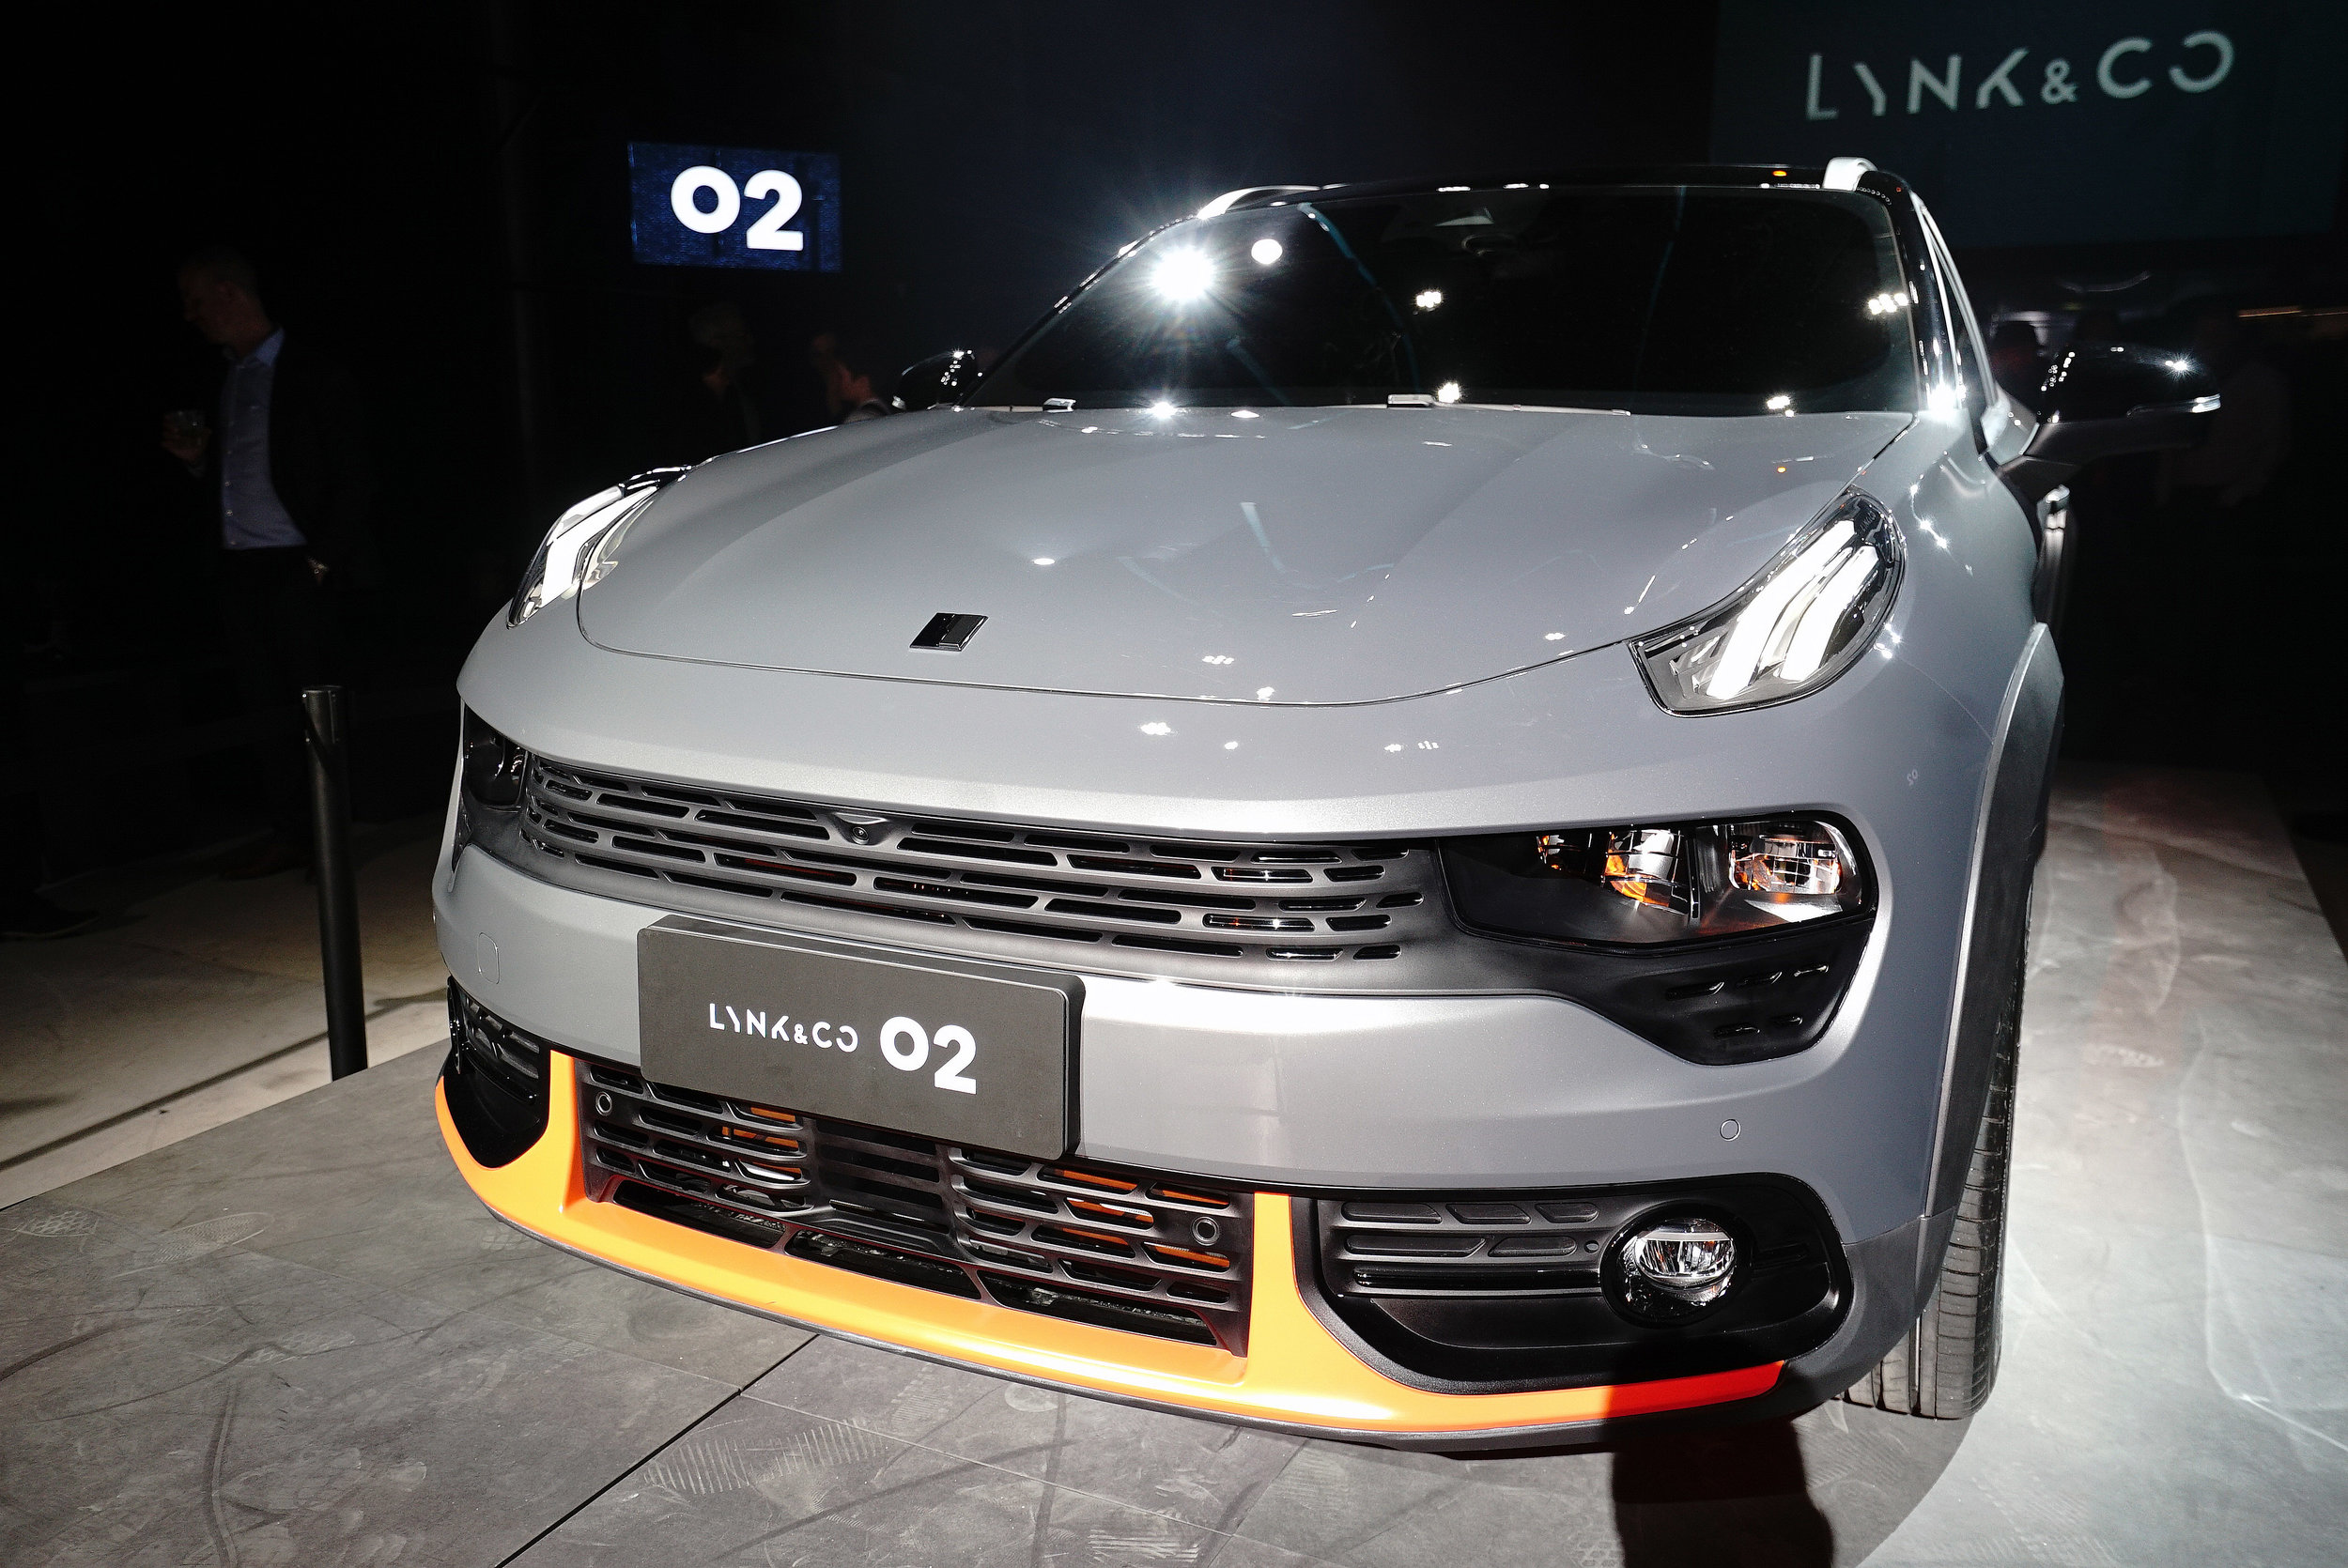 Lynk & Co 02 SUV Launch 9.jpg